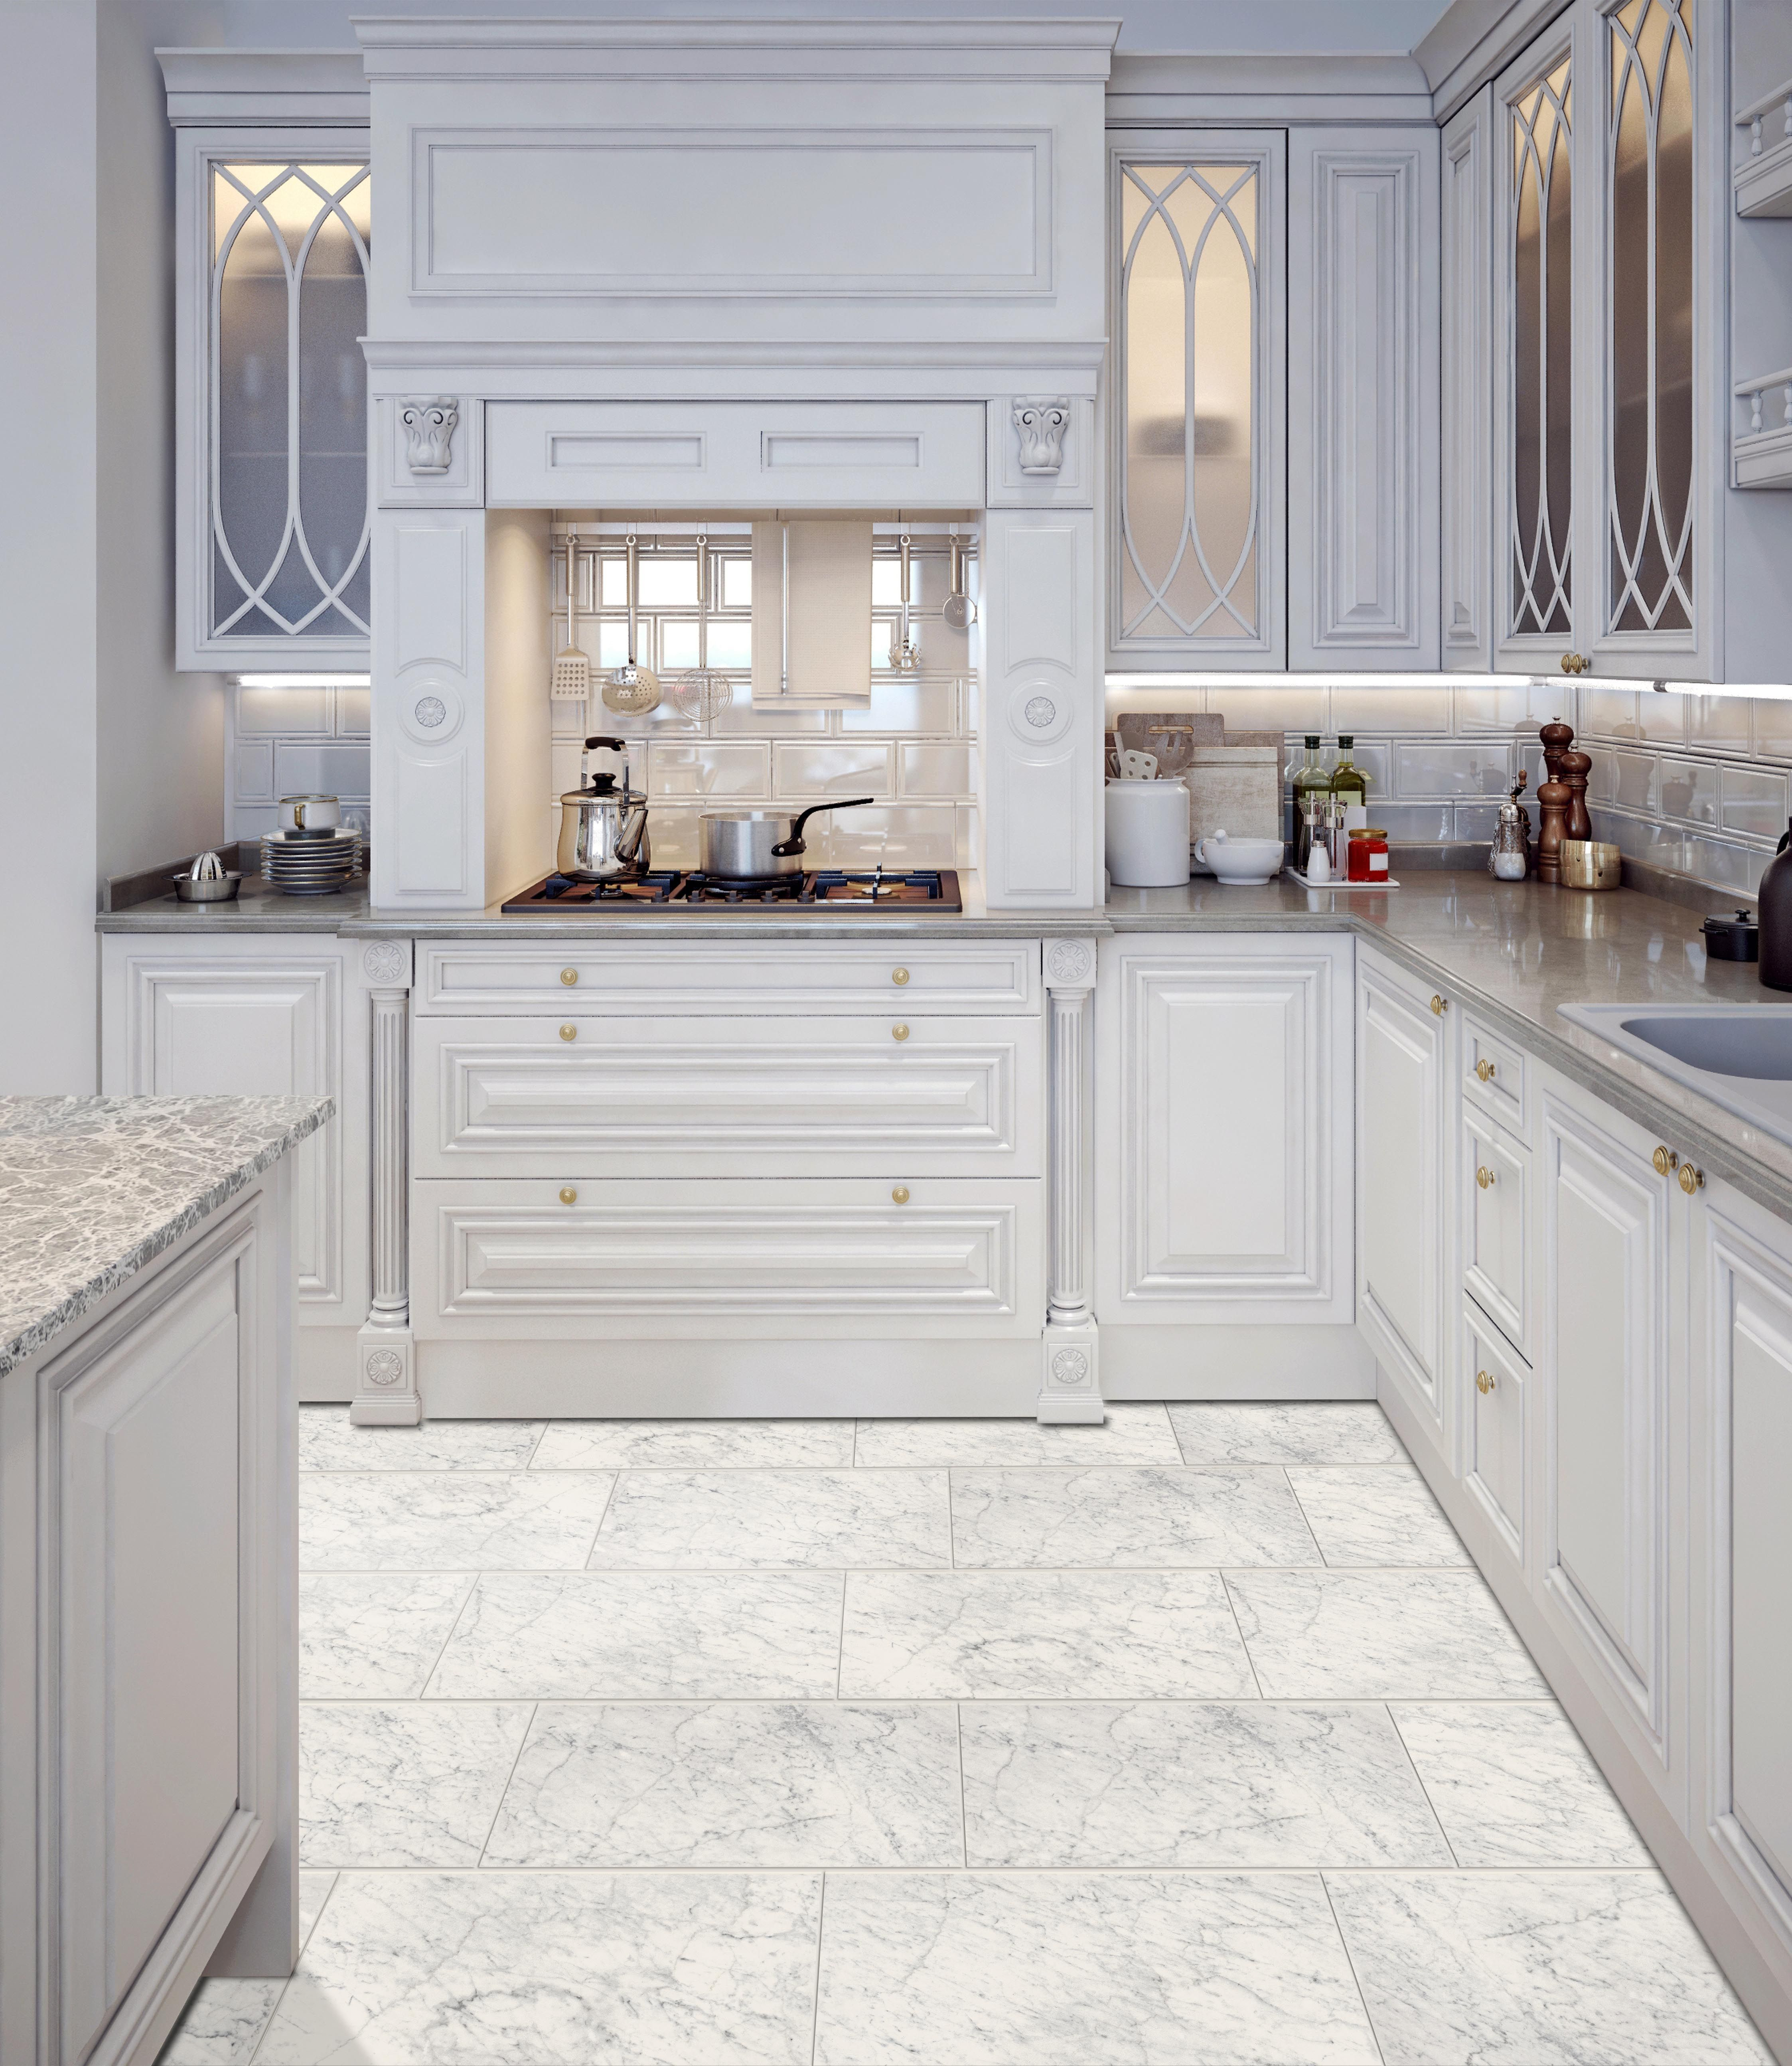 Style Selections Futuro White 12 In X 24 In Glazed Porcelain Marble Look Tile Lowes Com Marble Look Tile Marble Tile Floor Kitchen Marble Floor Kitchen